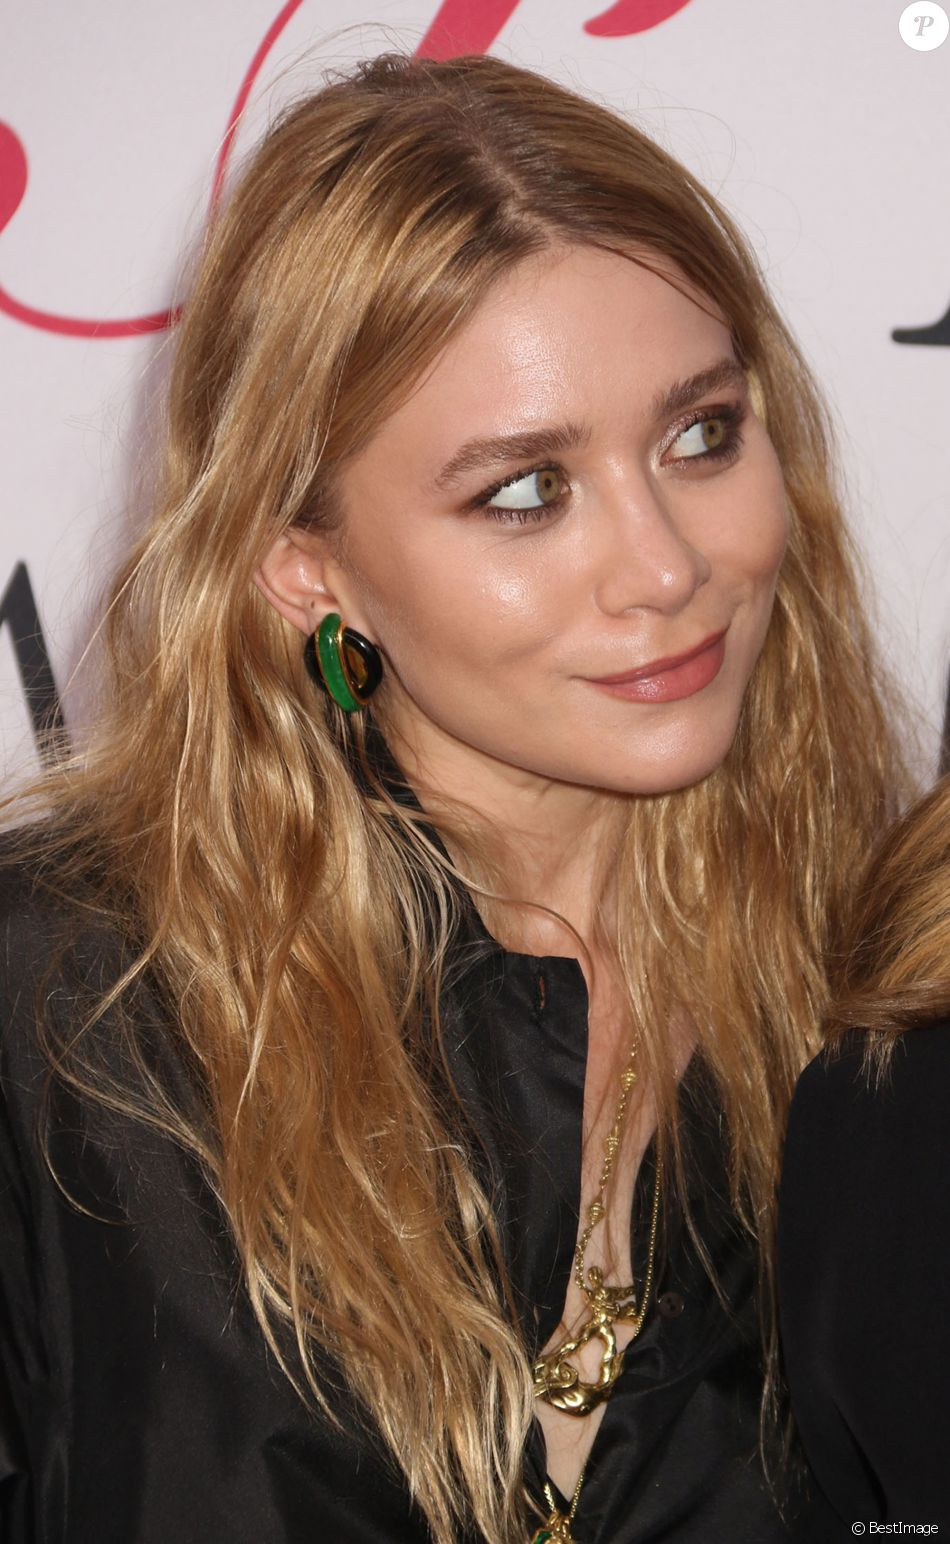 Ashley Olsen lors des CFDA Fashion Awards 2016 à New York, le 6 juin 2016.